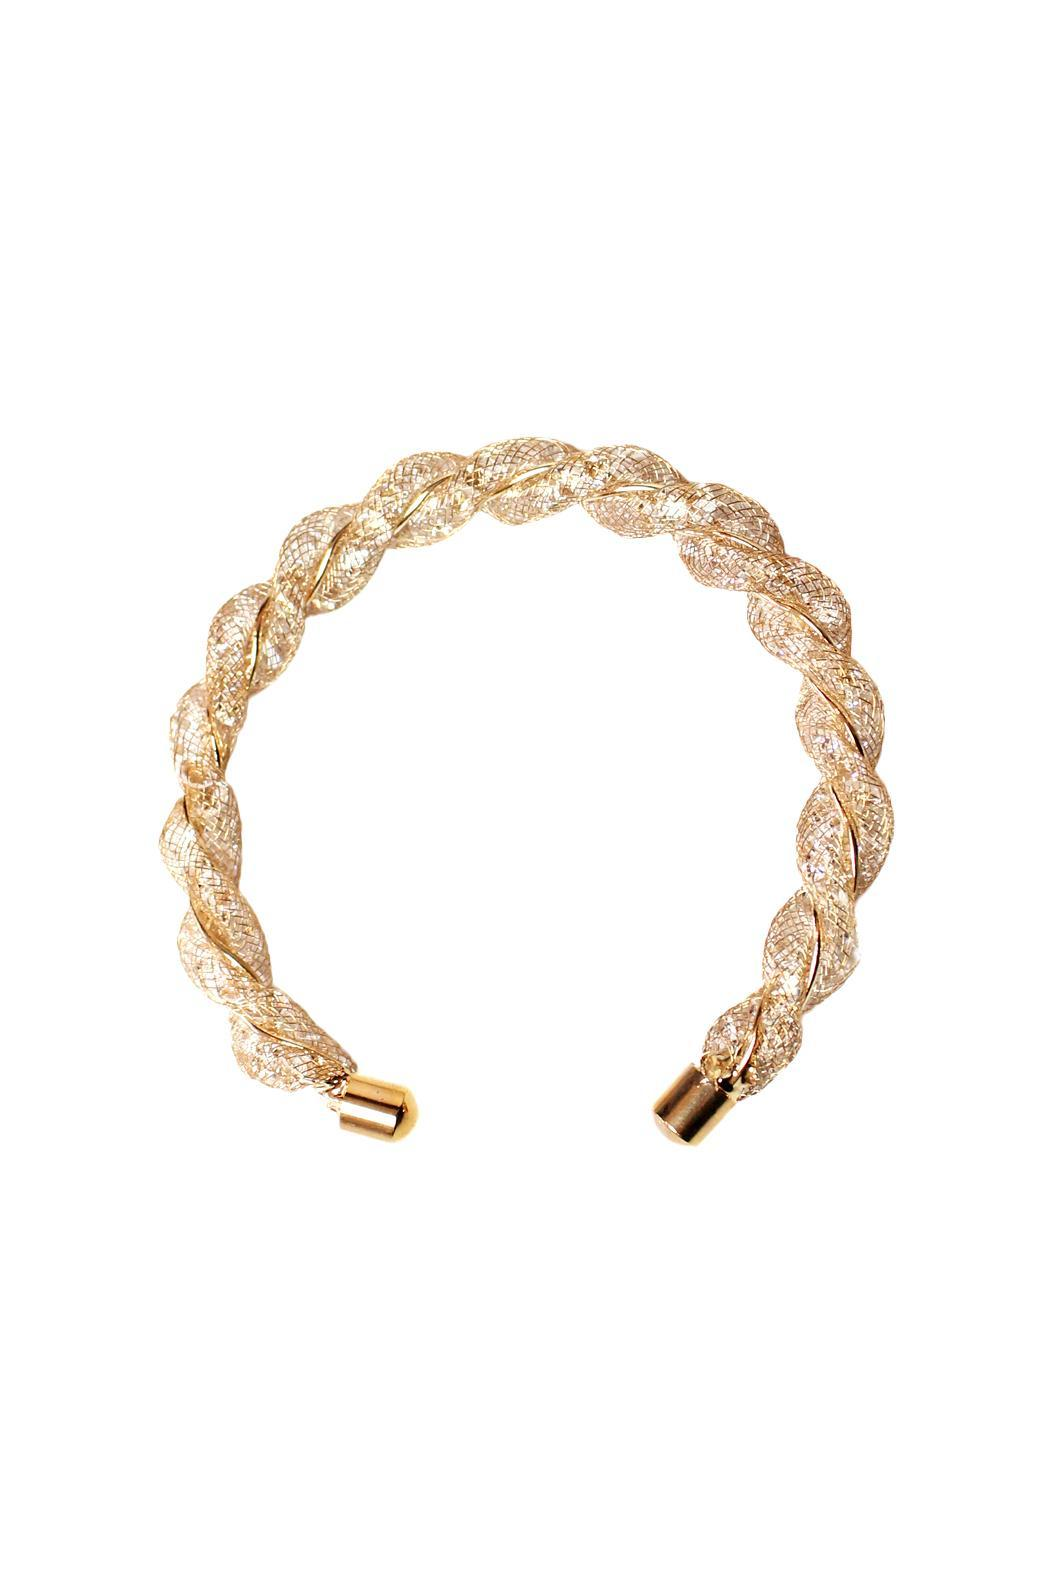 Carte Blanche Anklets Carte Blanche Rose Gold Cuff Bracelet From Vancouver Shoptiques